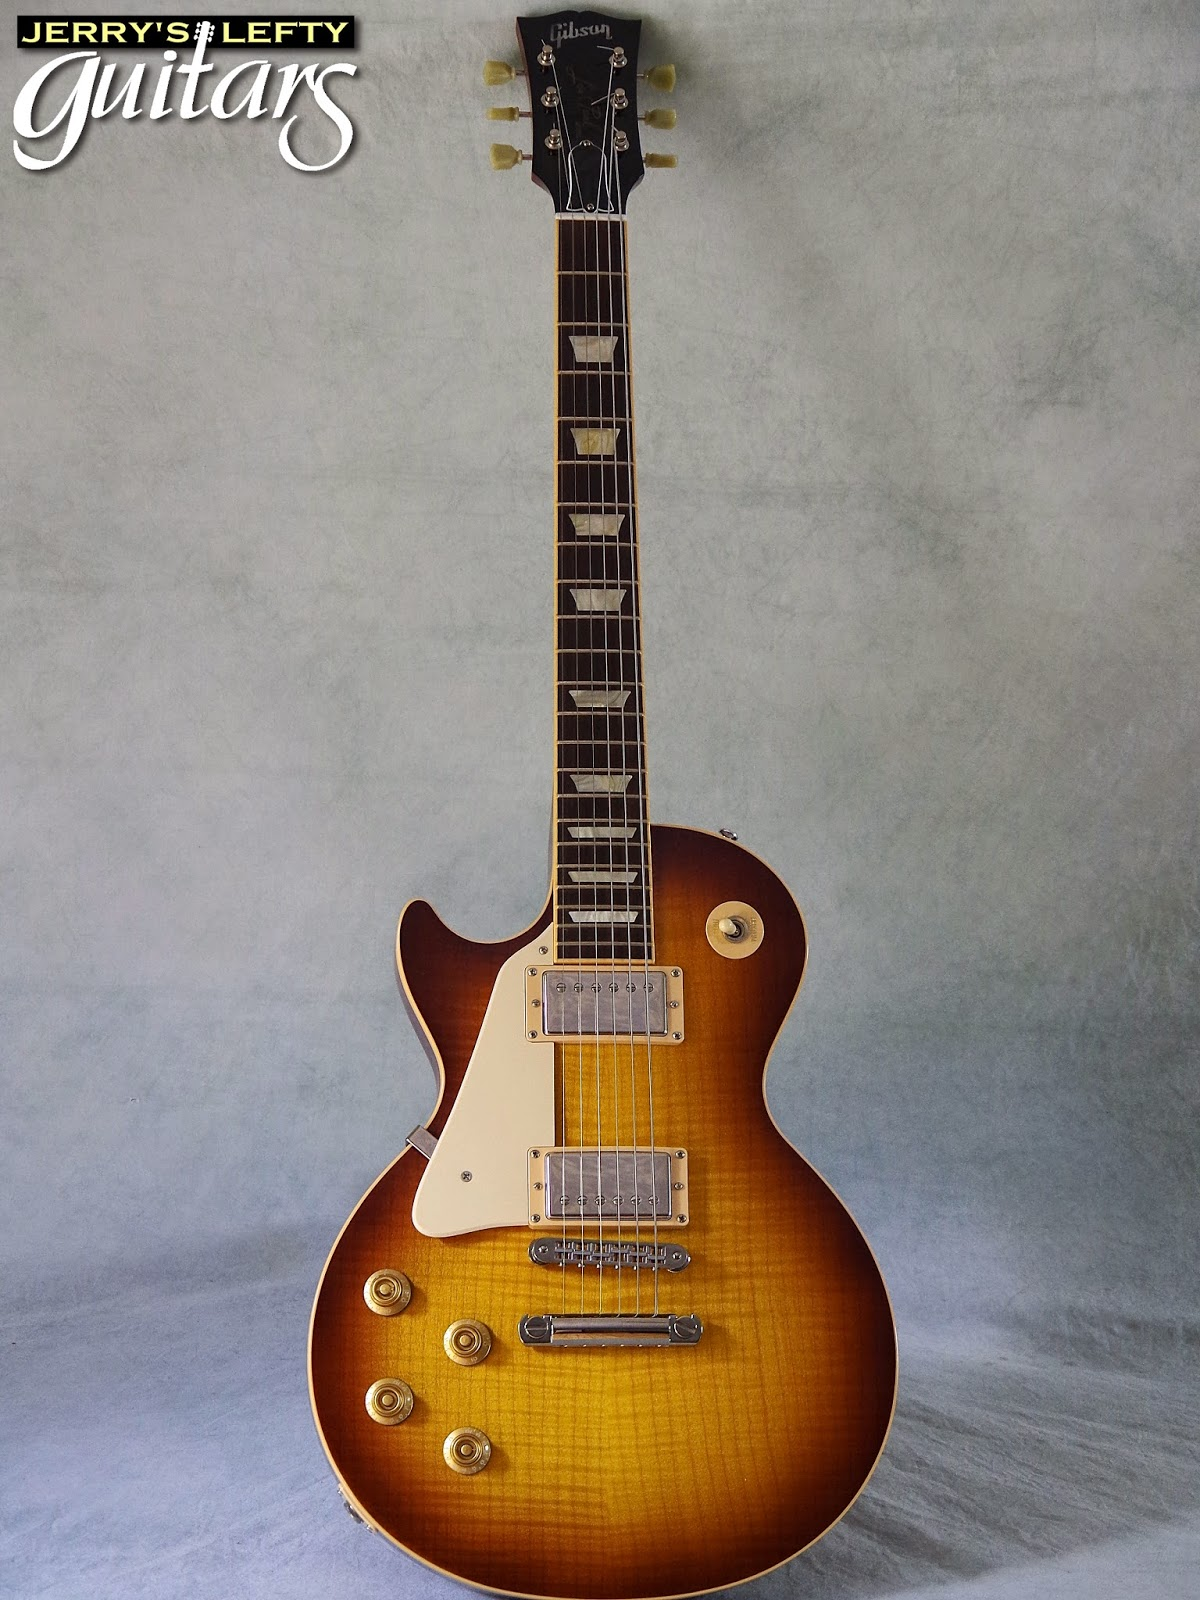 2008 Gibson Les Paul Standard left handed guitar 5 15 14